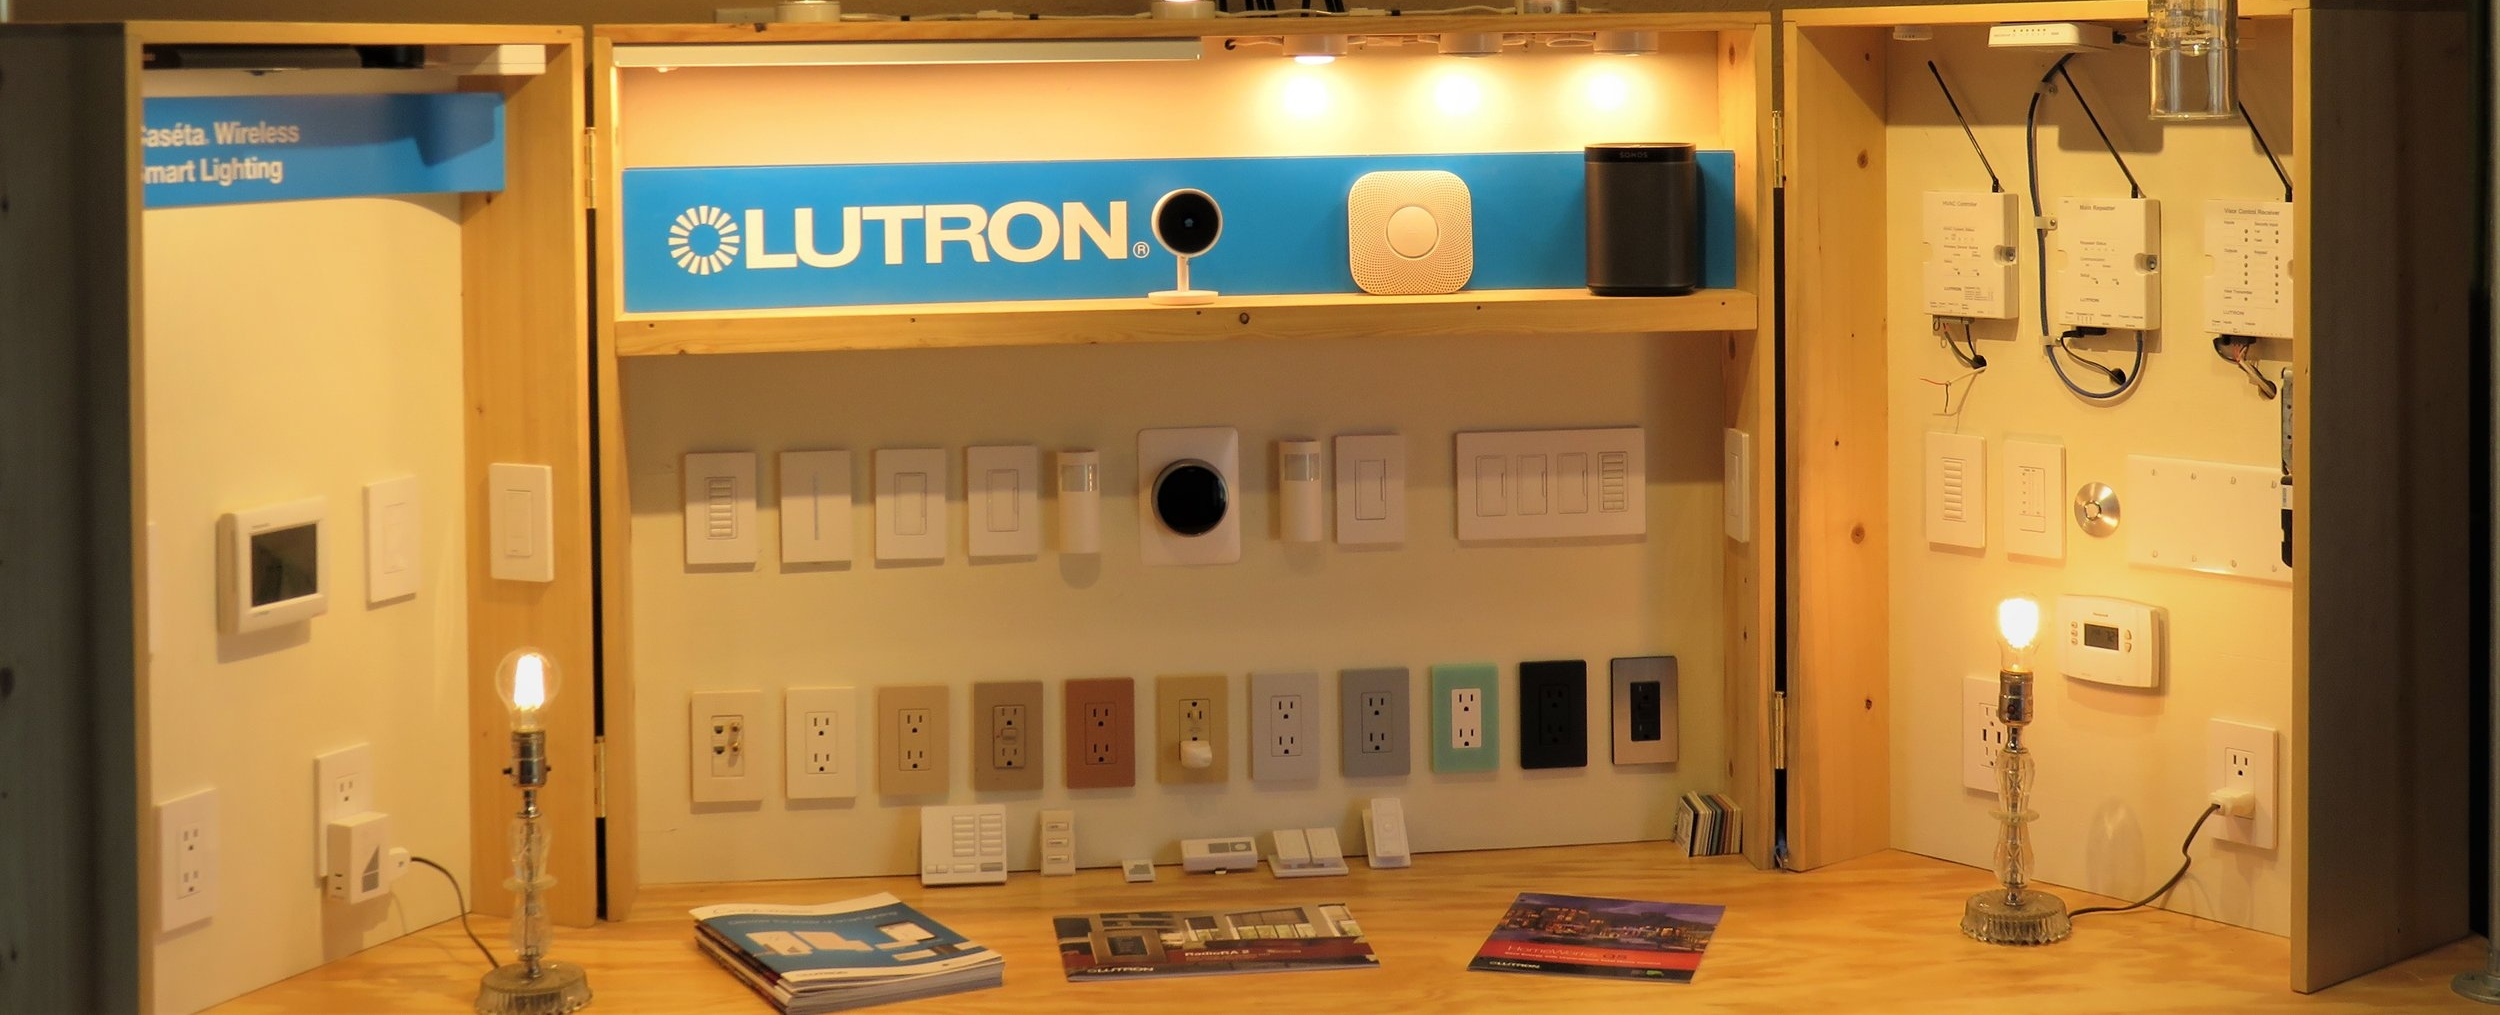 Our Lutron Experience Board! Stop by our office and check it out!